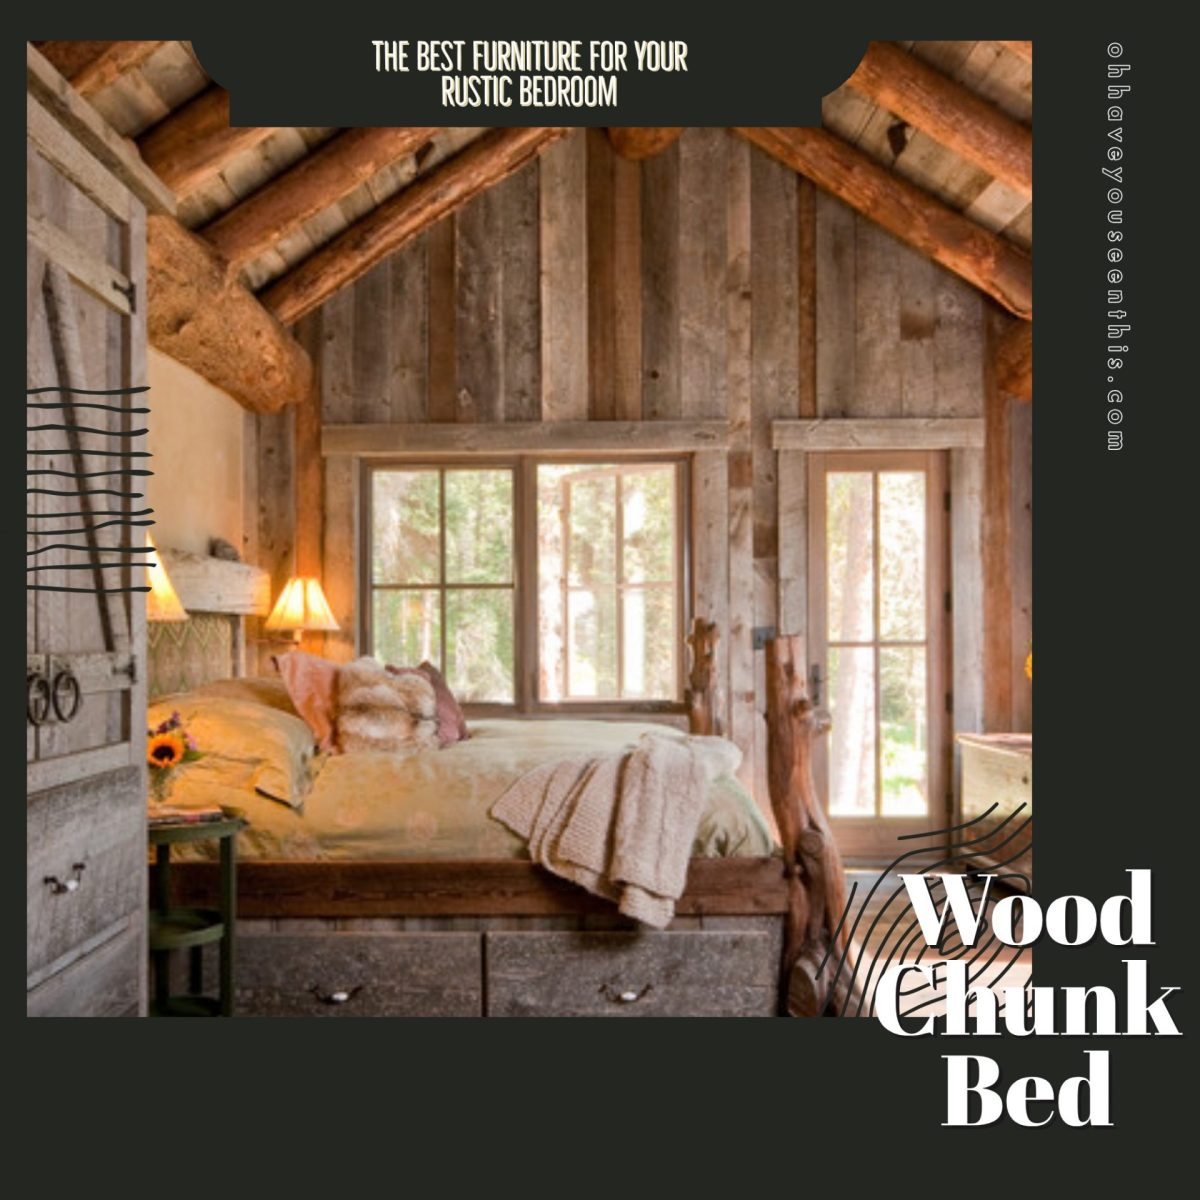 The Best Furniture for Your Rustic Bedroom